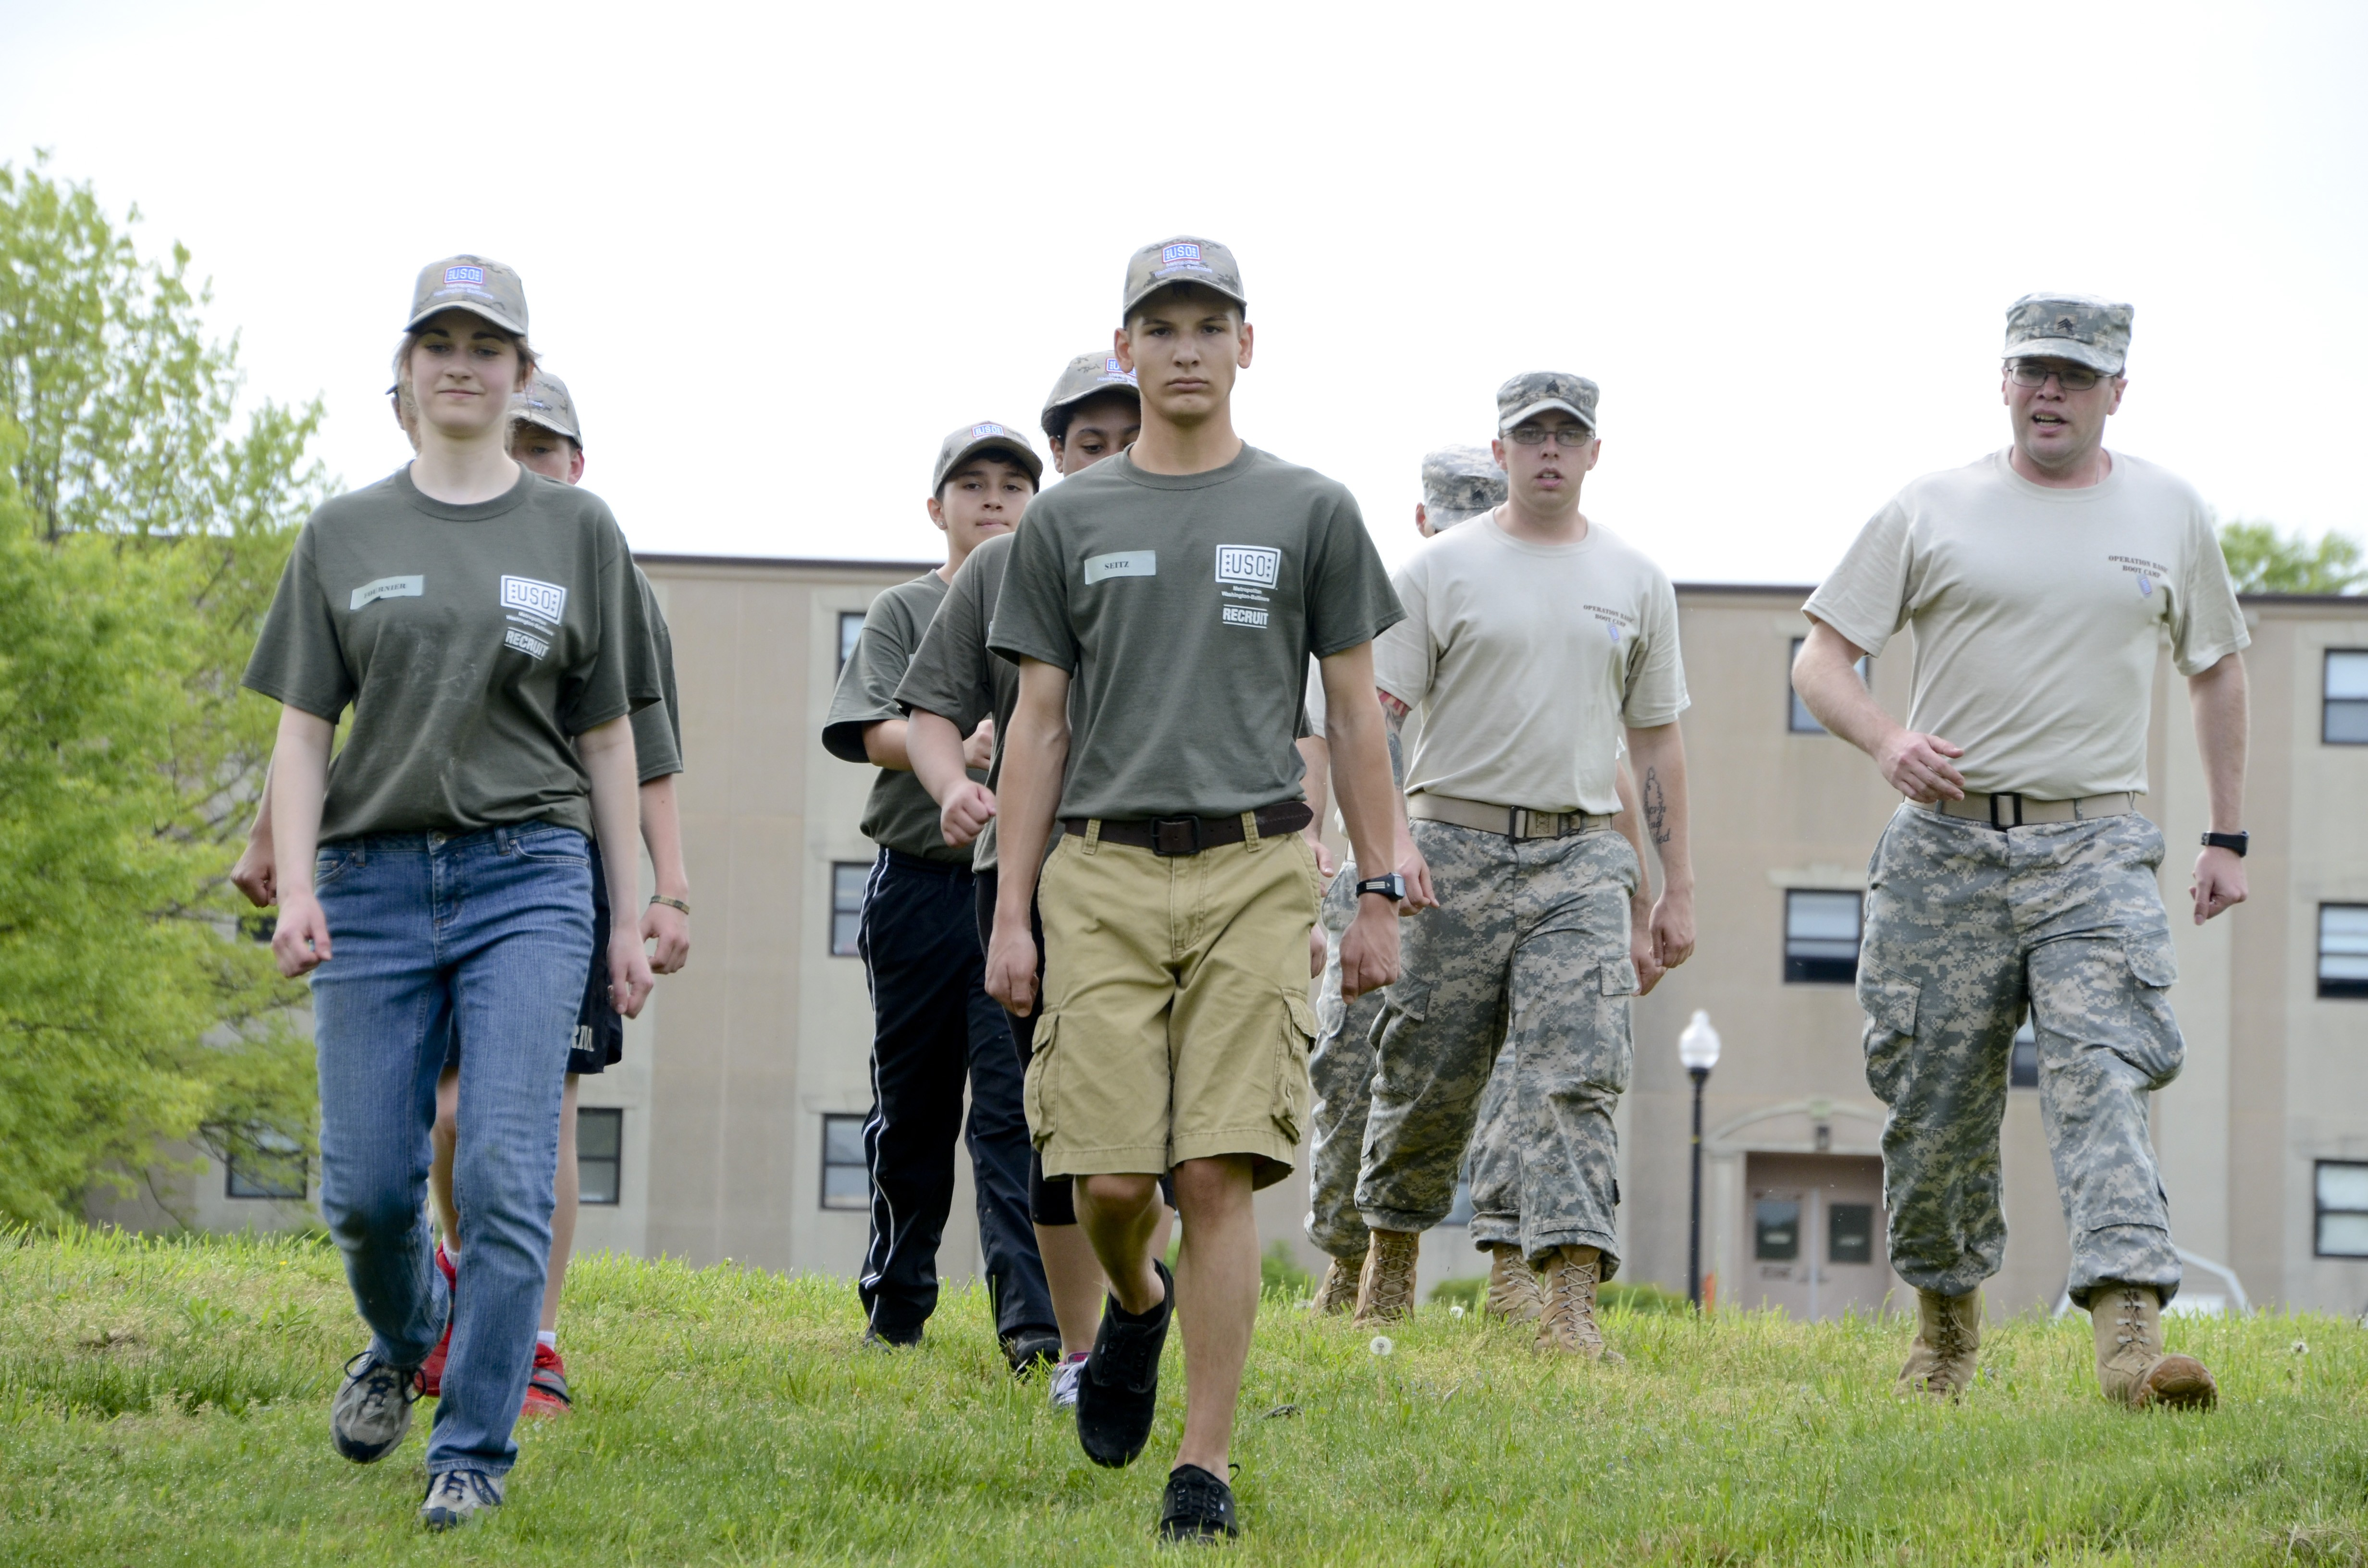 Kids ship out to Boot Camp > Joint Base Andrews